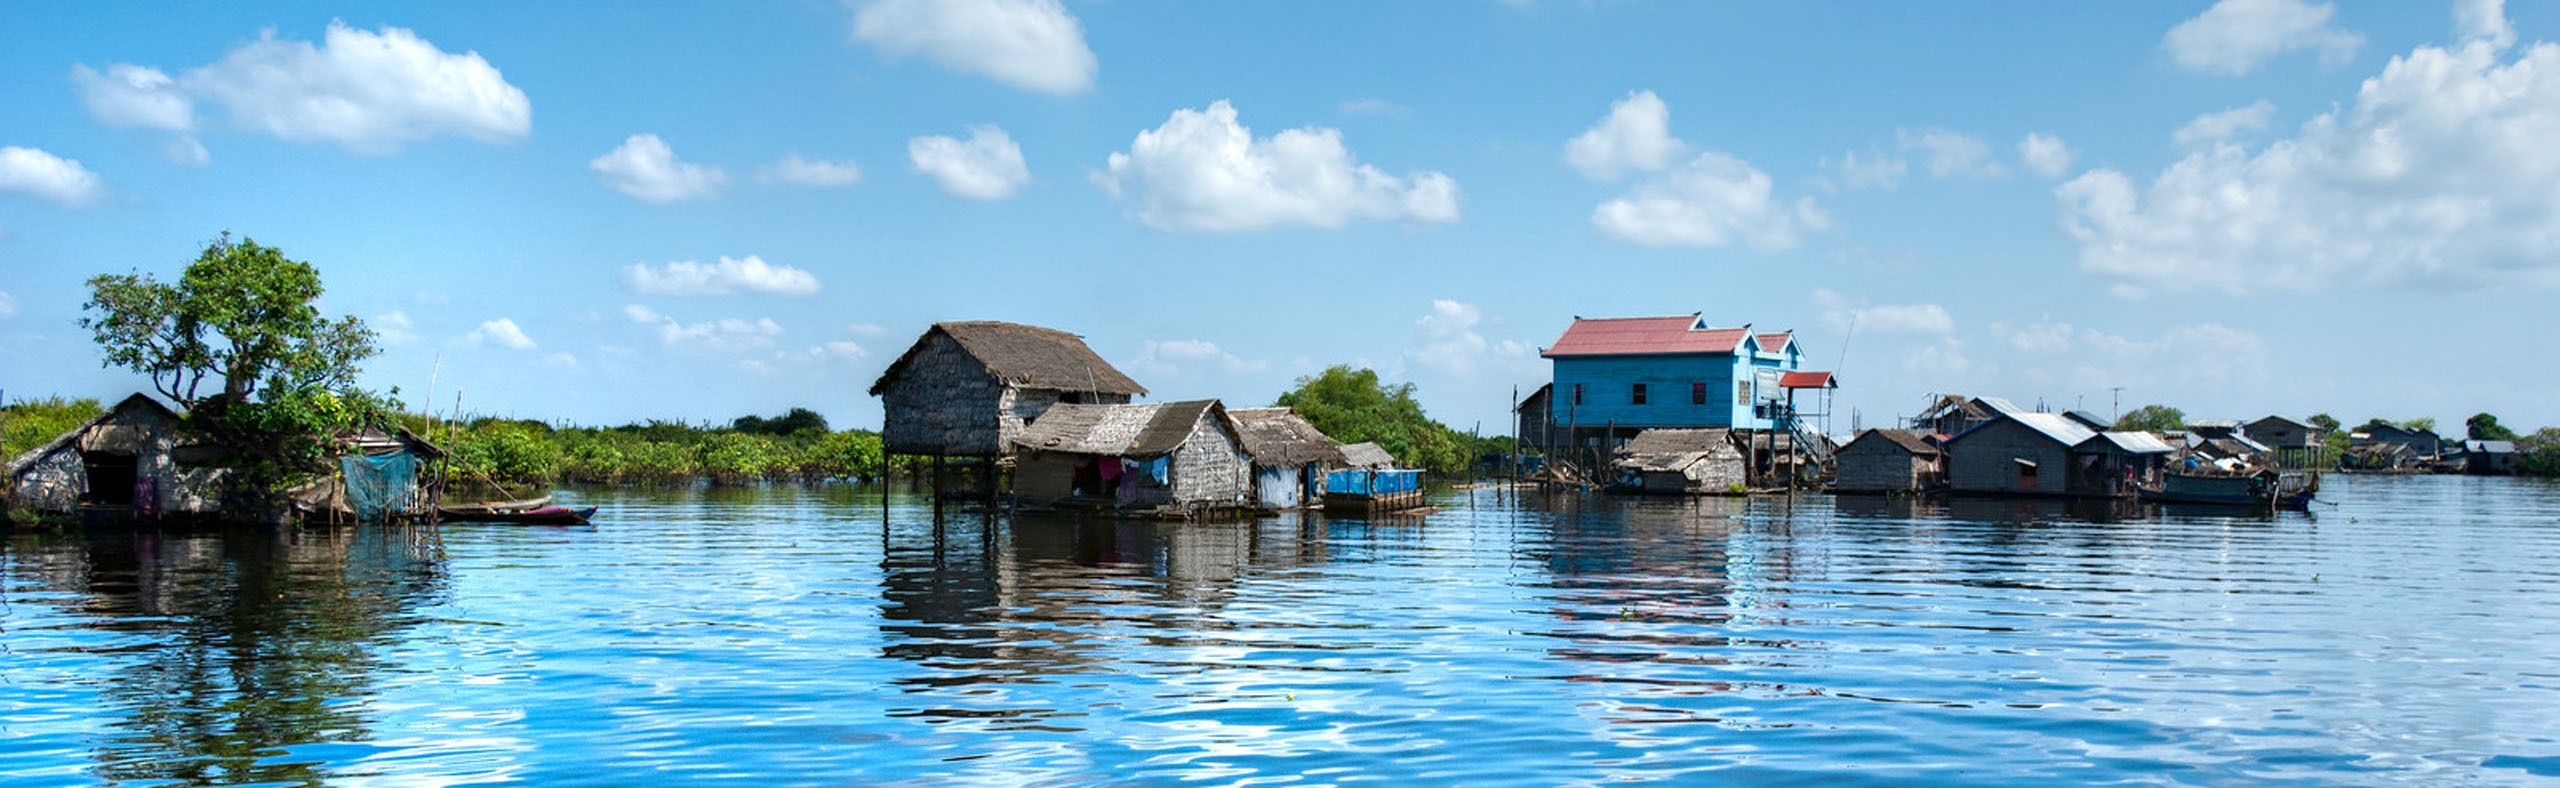 Boat Tours in Cambodia